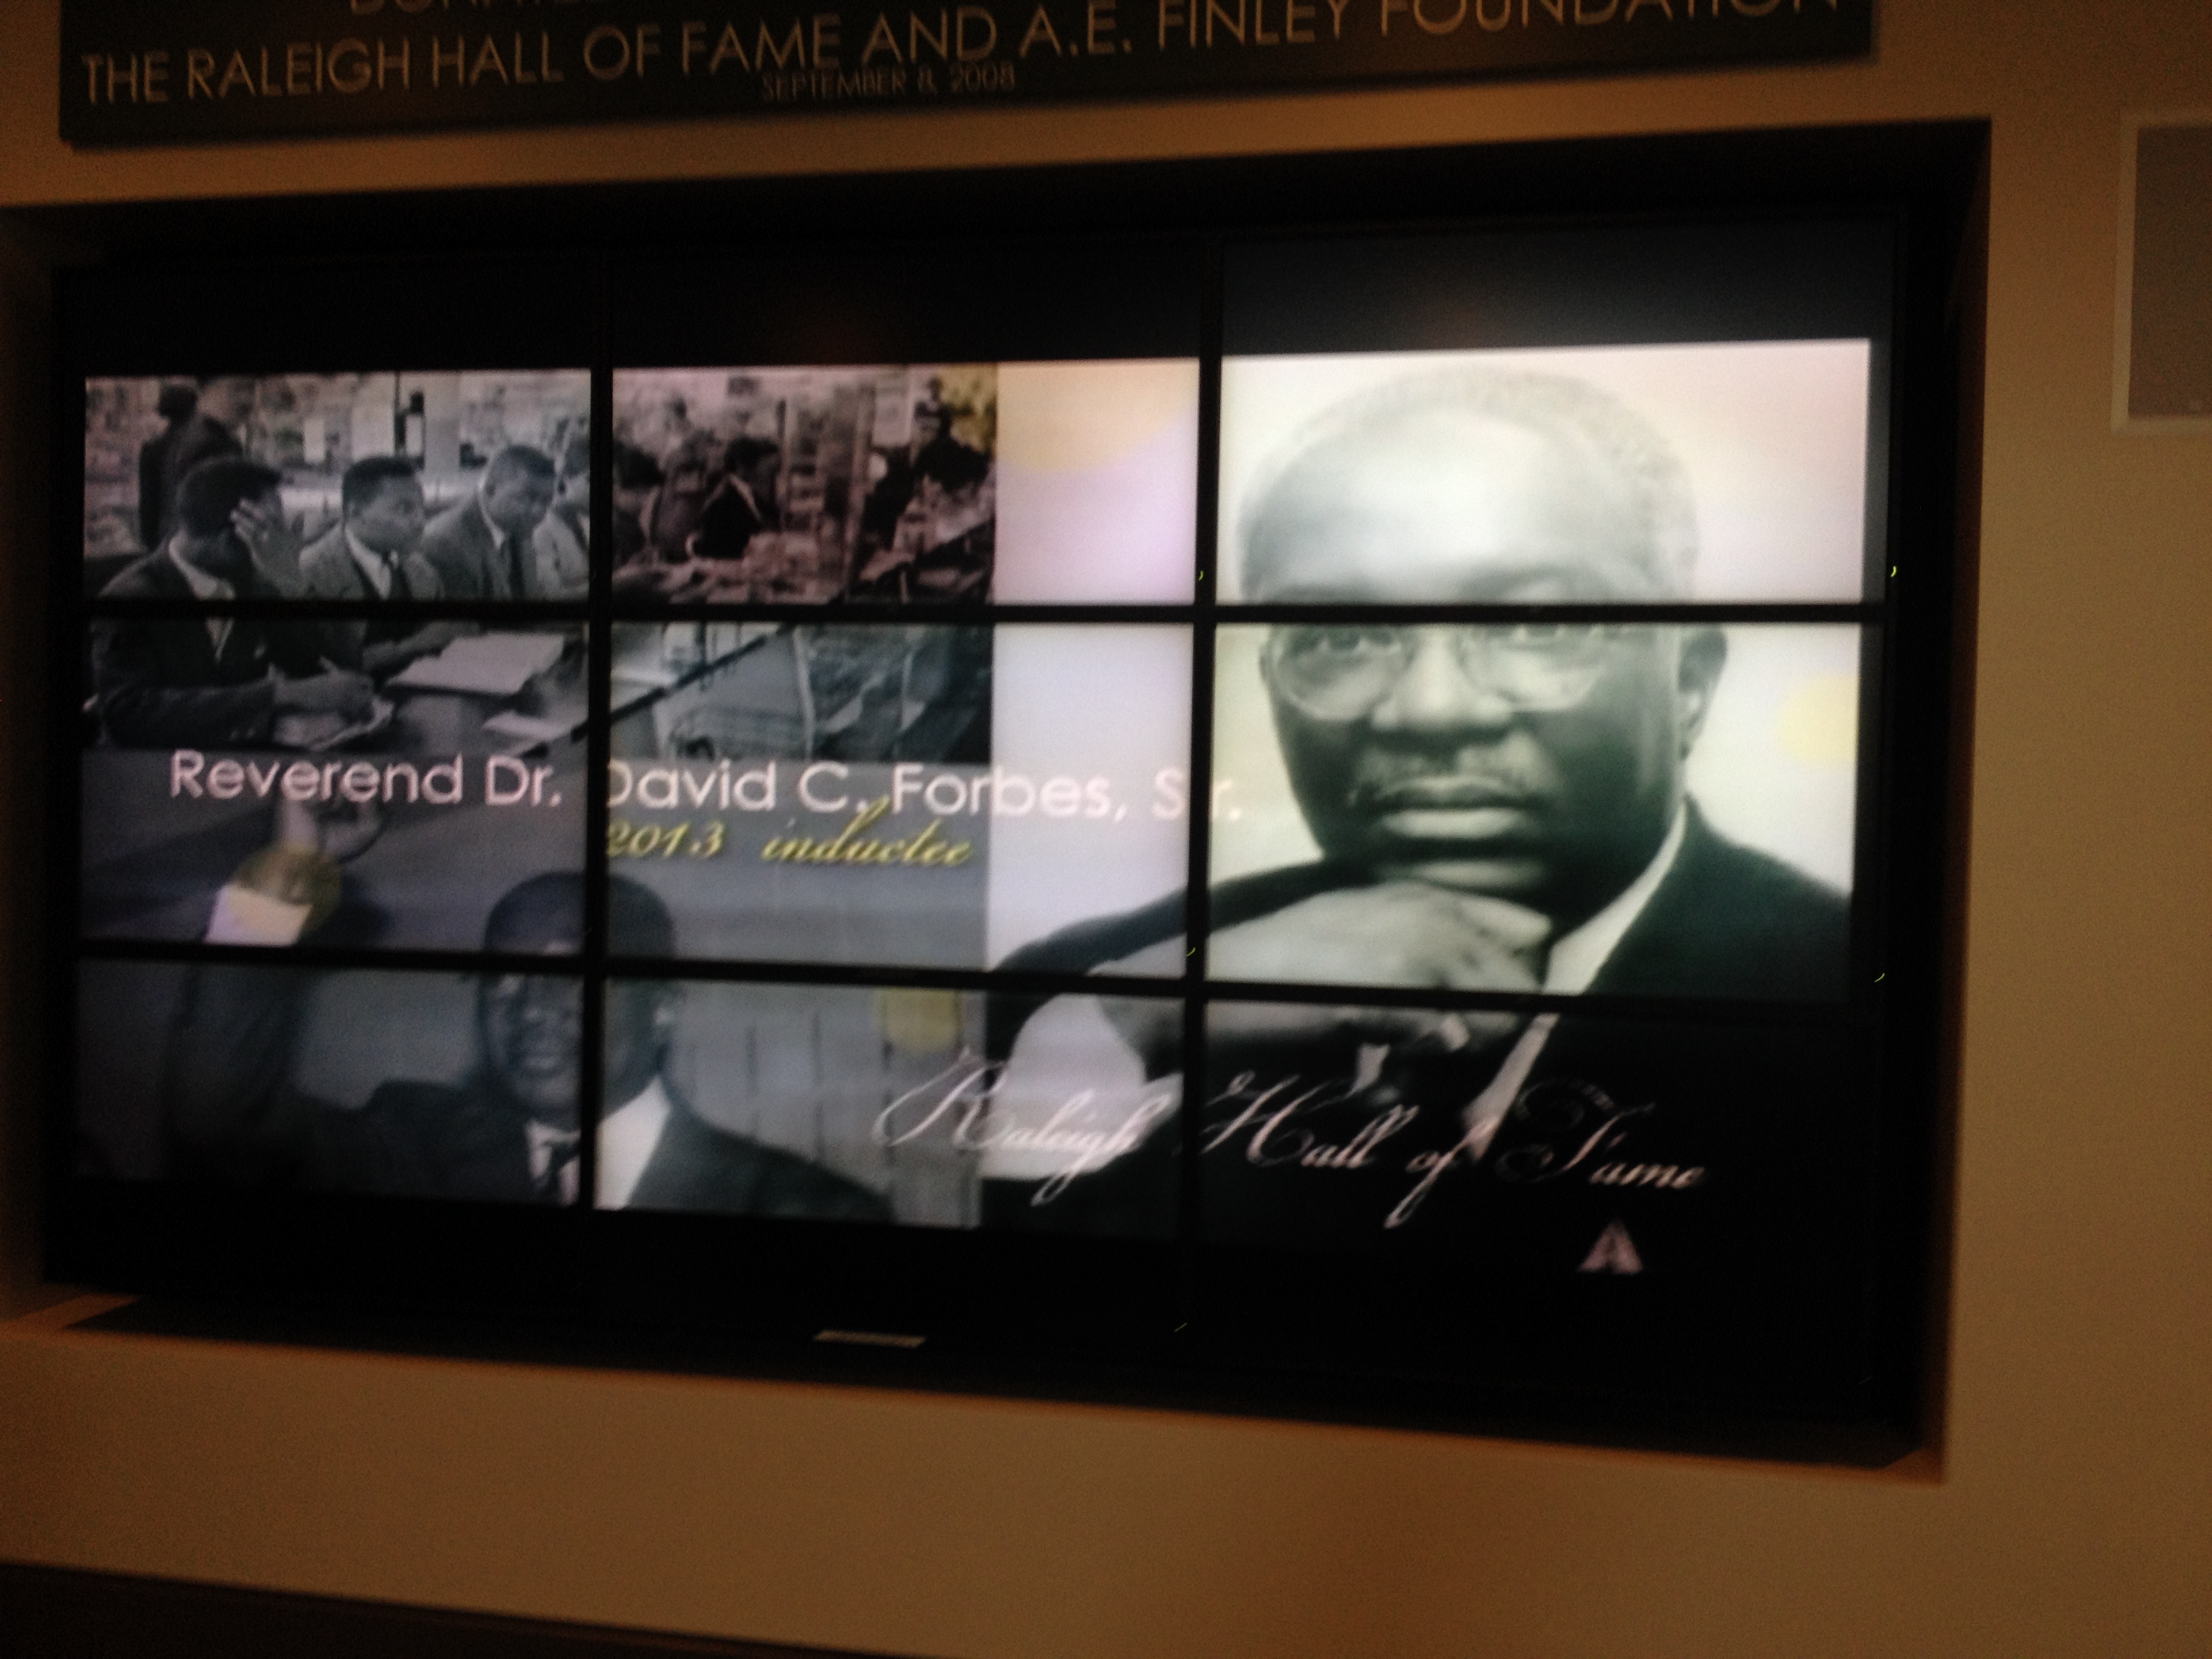 Dr. David Forbes, Raleigh civil rights leader and Raleigh Hall of Fame honoree, 2013. He was the first student arrested during the February 10, 1960 sit in at Woolworths in Cameron Village and founding member of SNCC